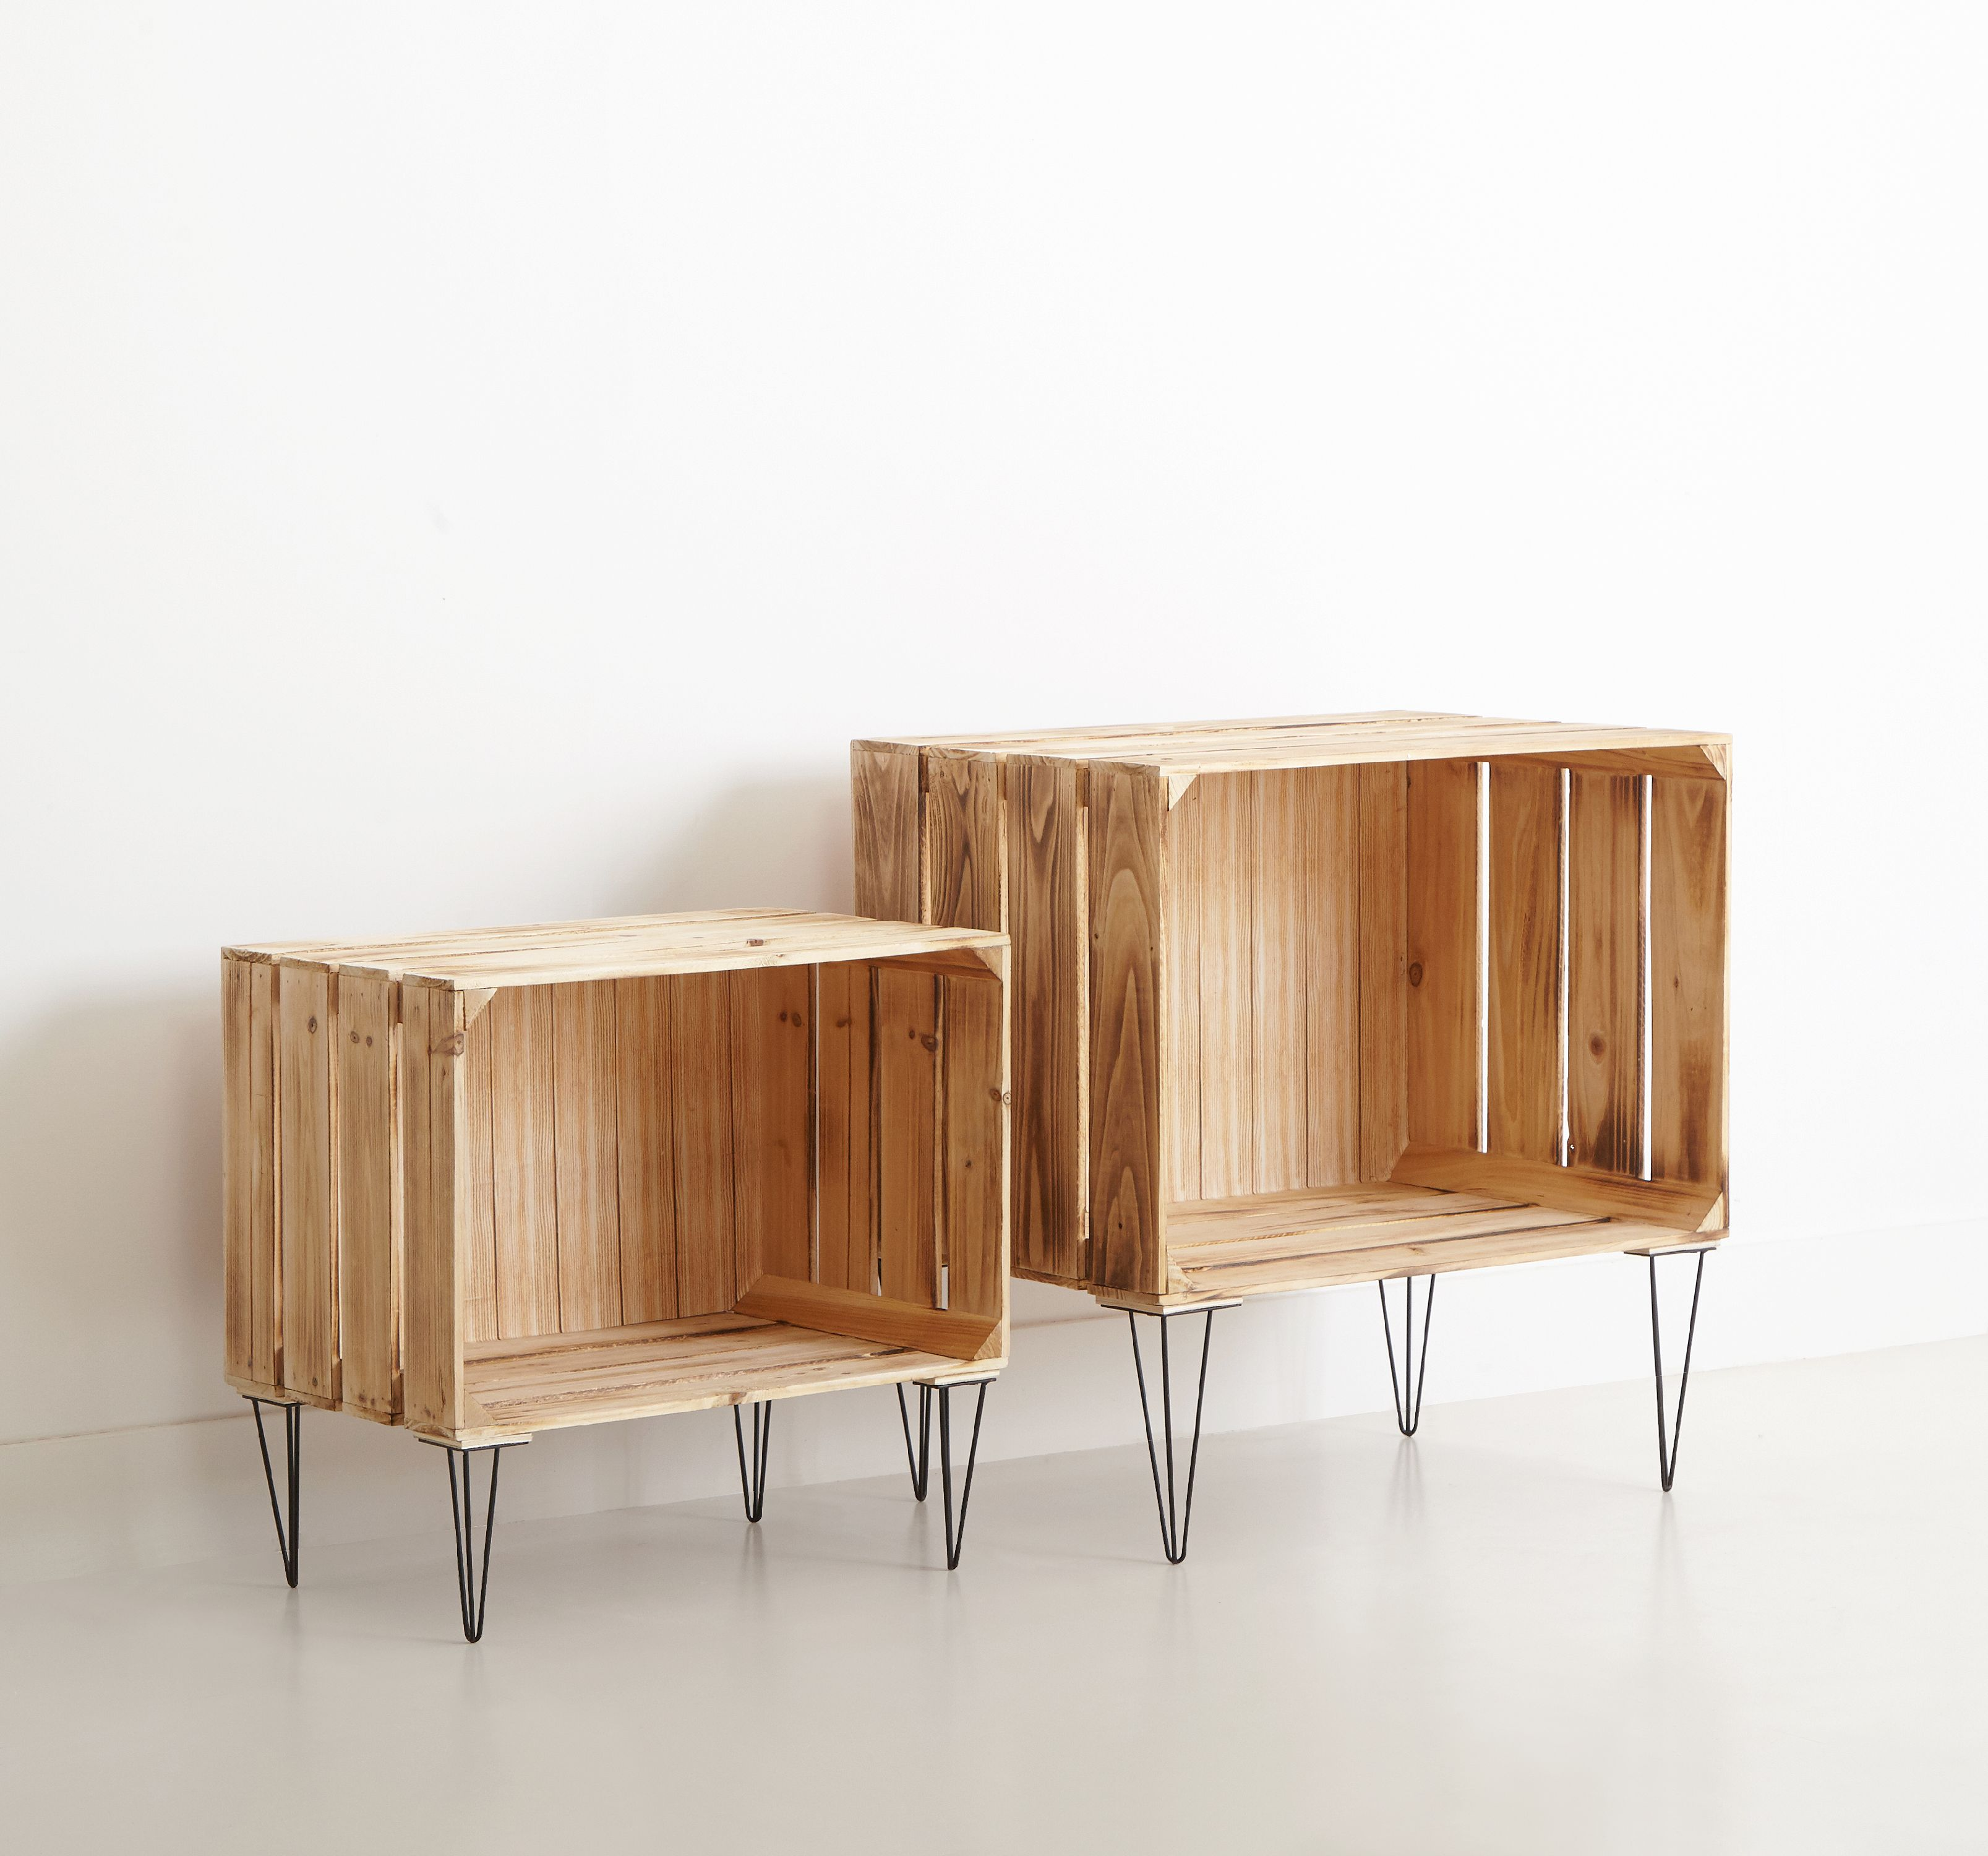 Wooden Nested Furniture Storage Crates